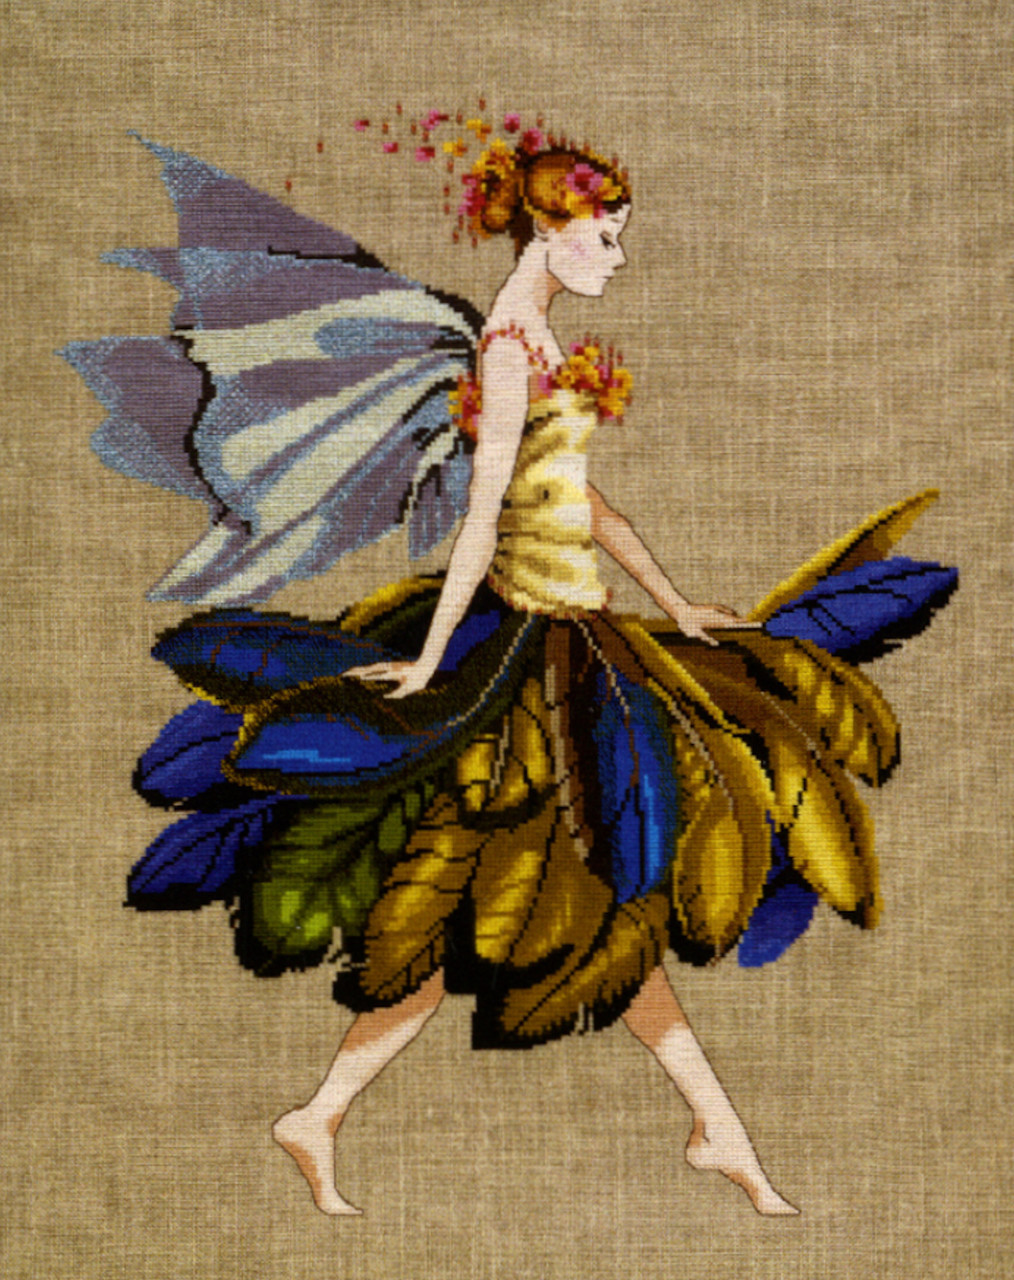 Mirabilia - The Feather Fairy